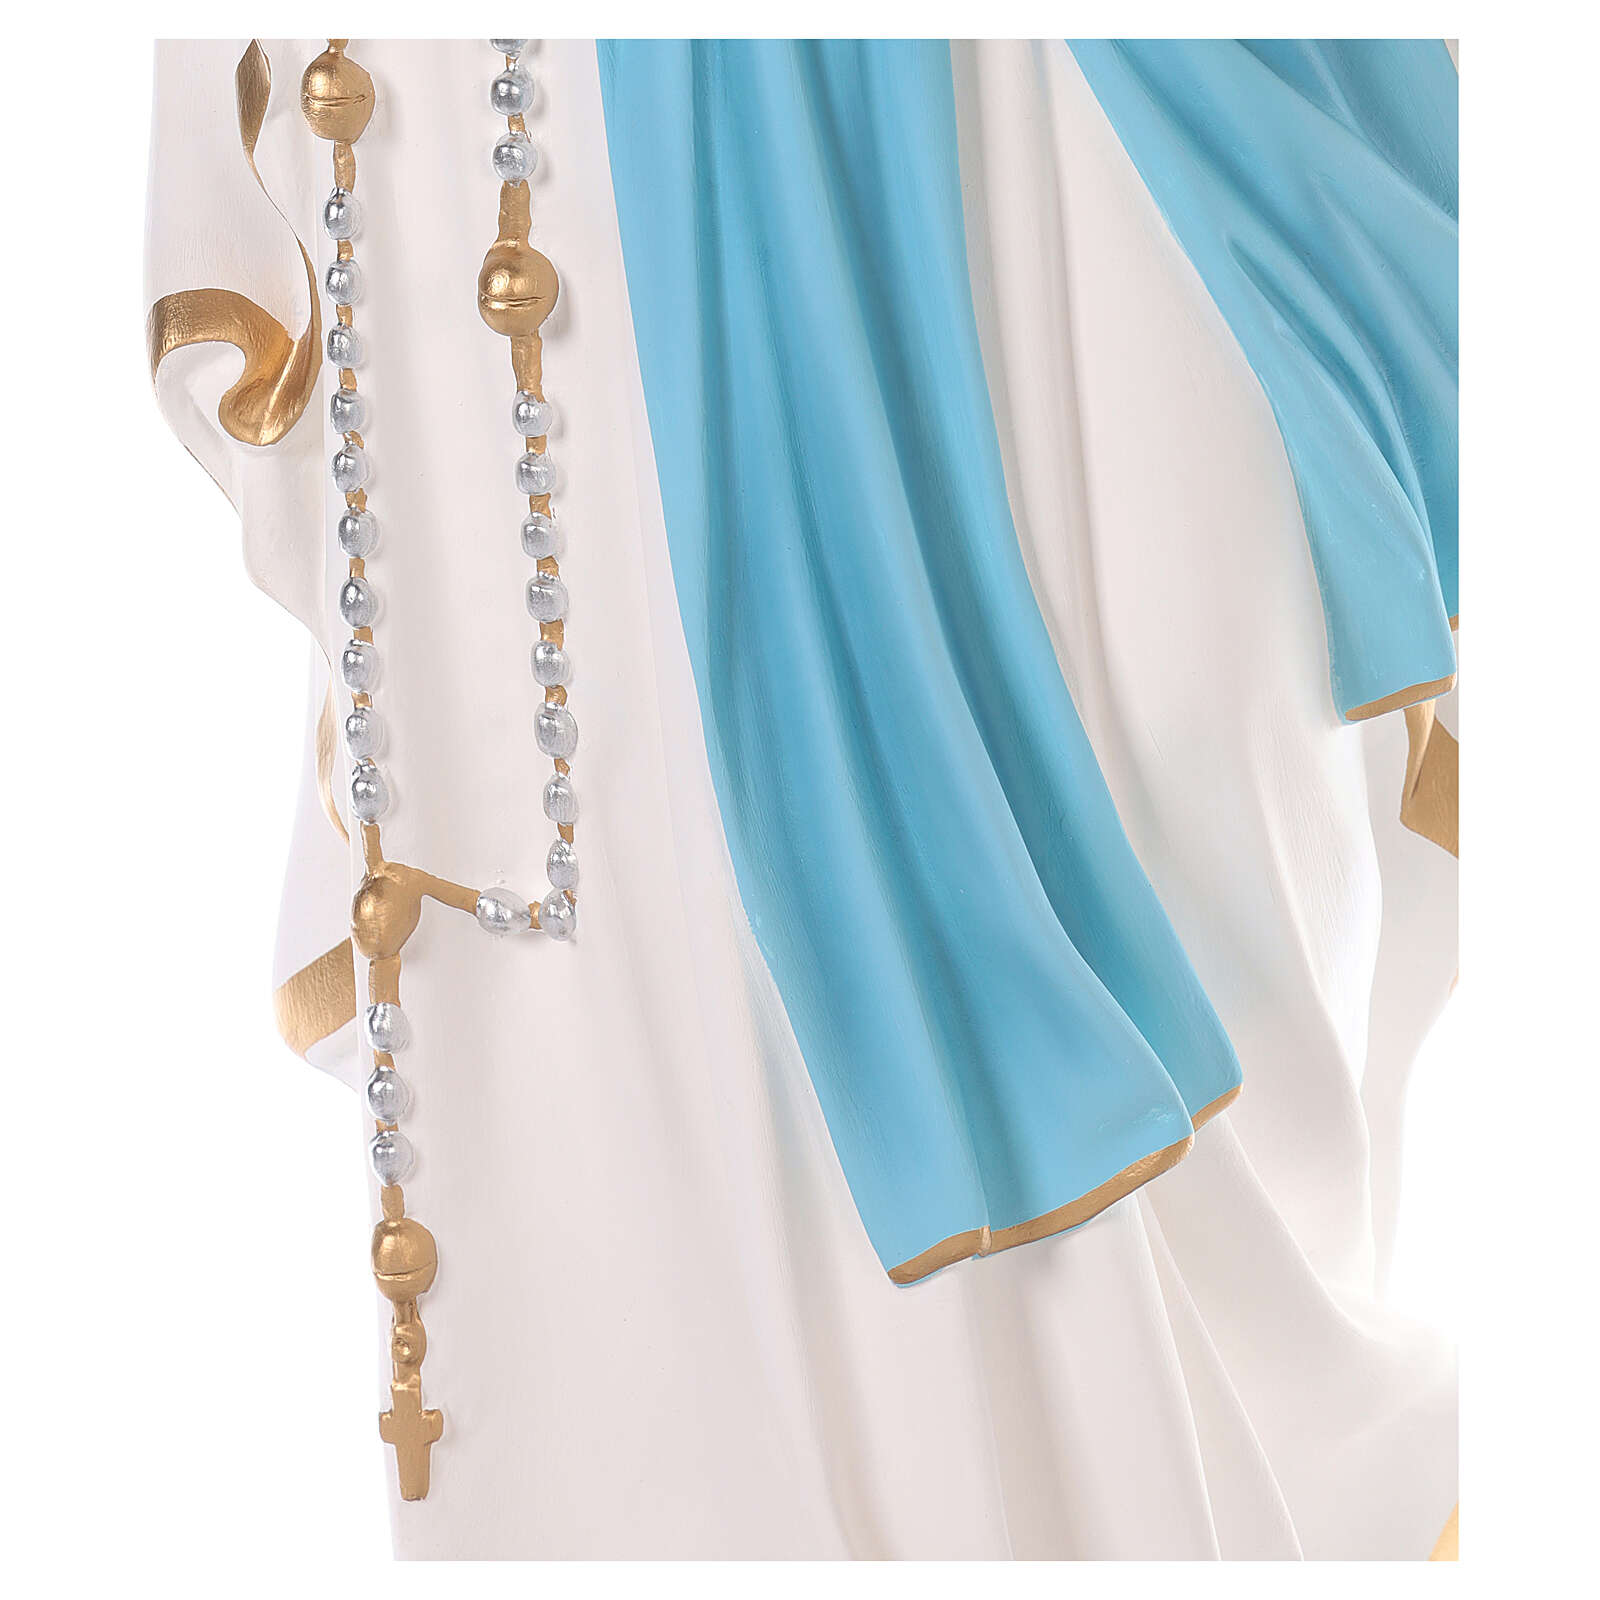 Our Lady of Lourdes statue 110 cm, in colored fiberglass with glass eyes 4